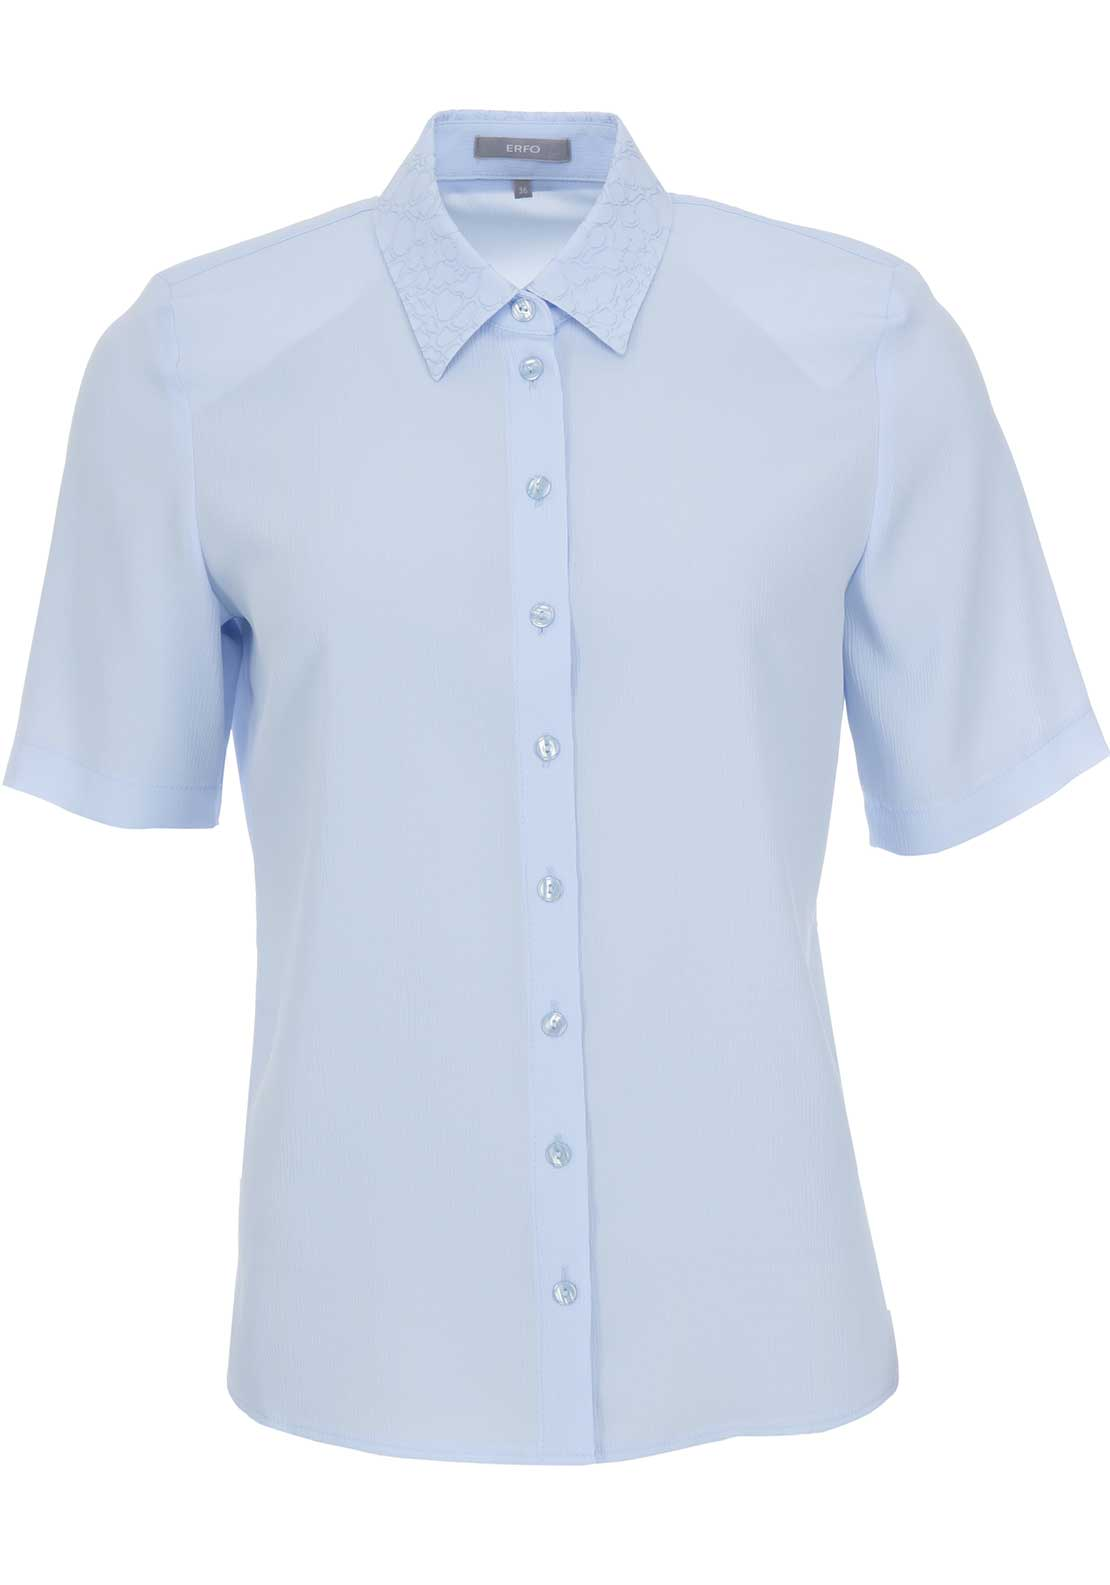 ERFO Embroidered Trim Short Sleeve Blouse, Blue